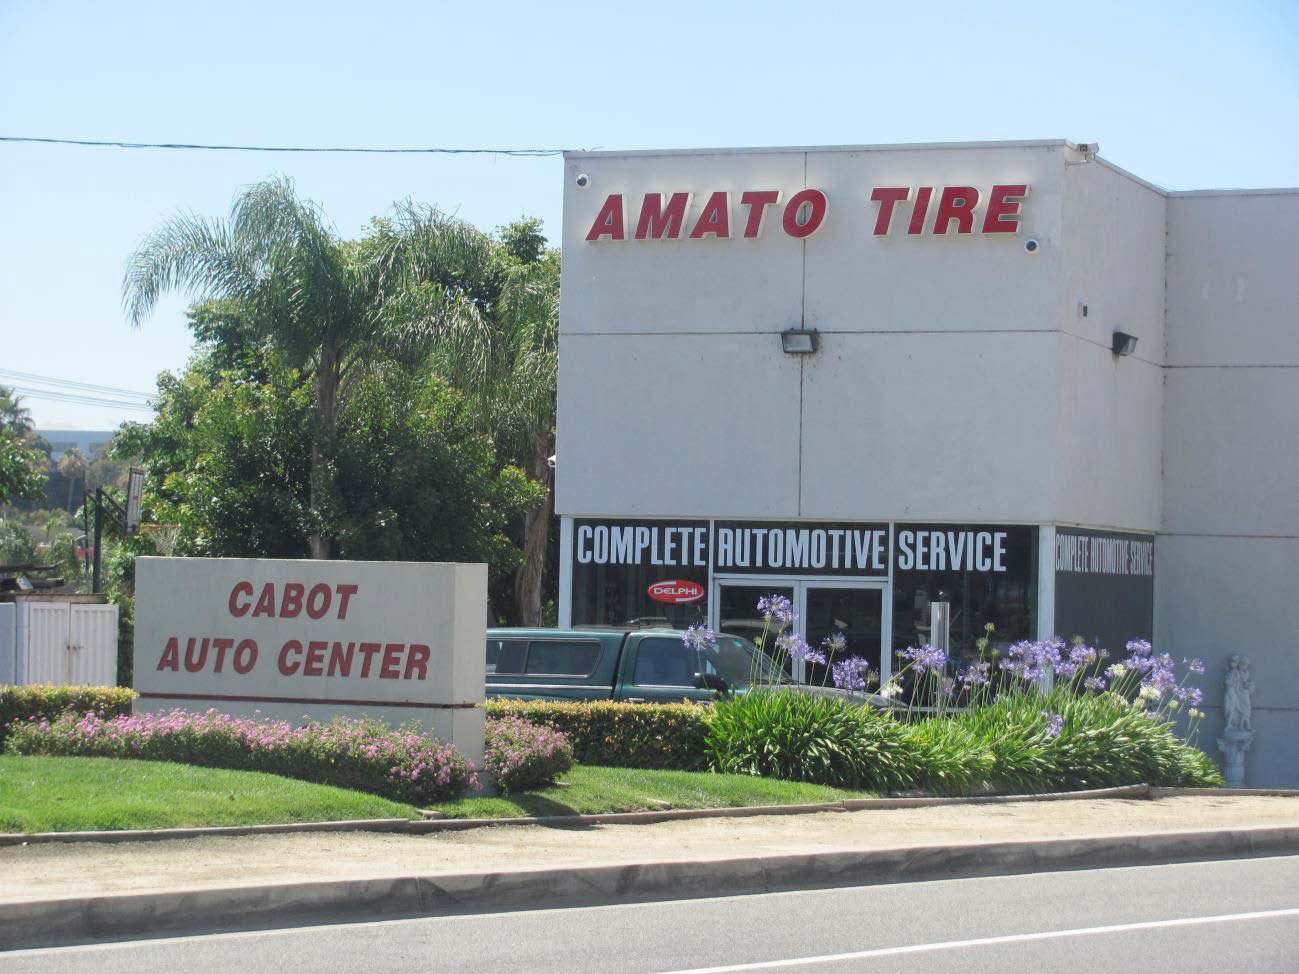 tire service in laguna hills, ca brake service in laguna hills, ca oil change in laguna hills, ca